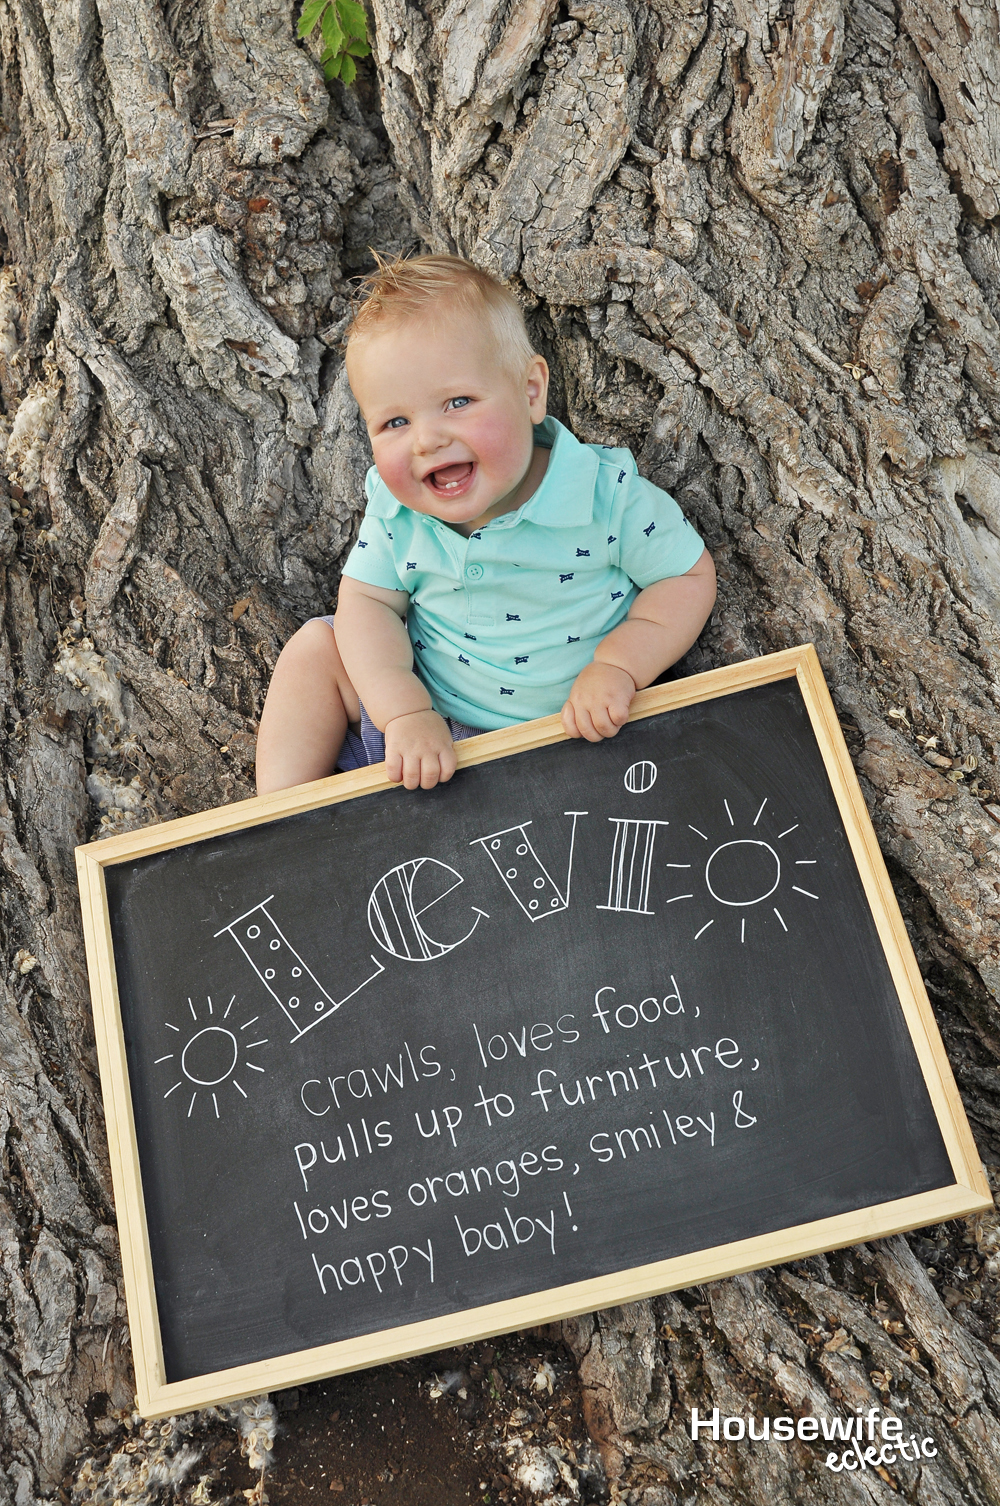 Tips For A Perfect Diy 1 Year Old Photo Shoot Housewife Eclectic